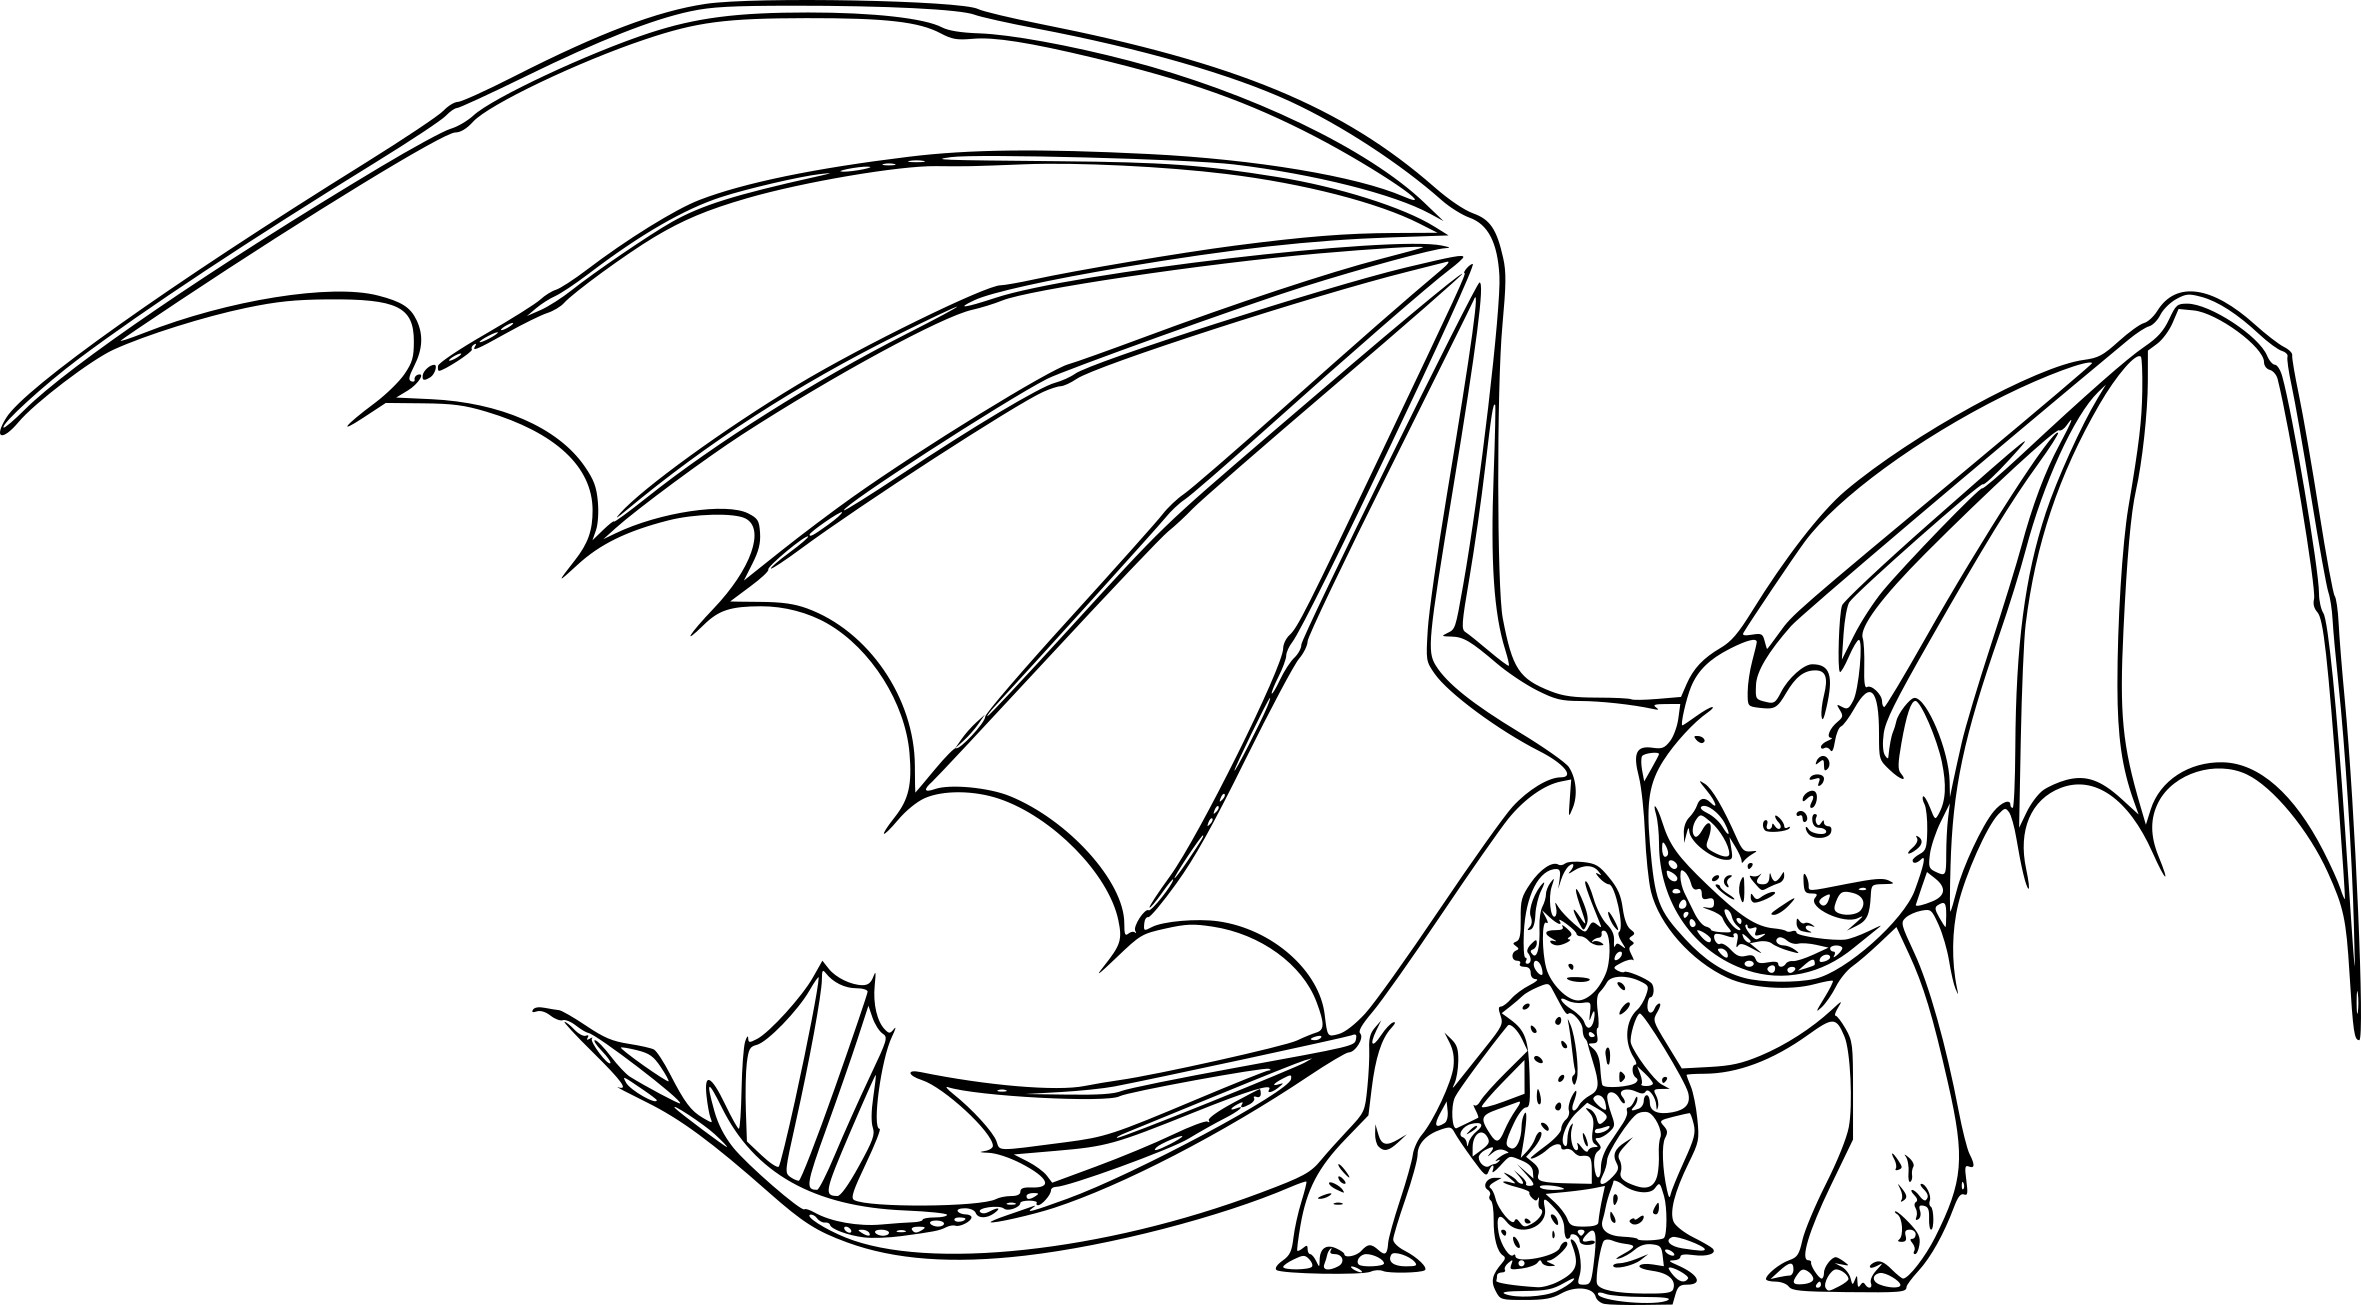 Coloriage krokmou dragon imprimer - Coloriages de dragons ...